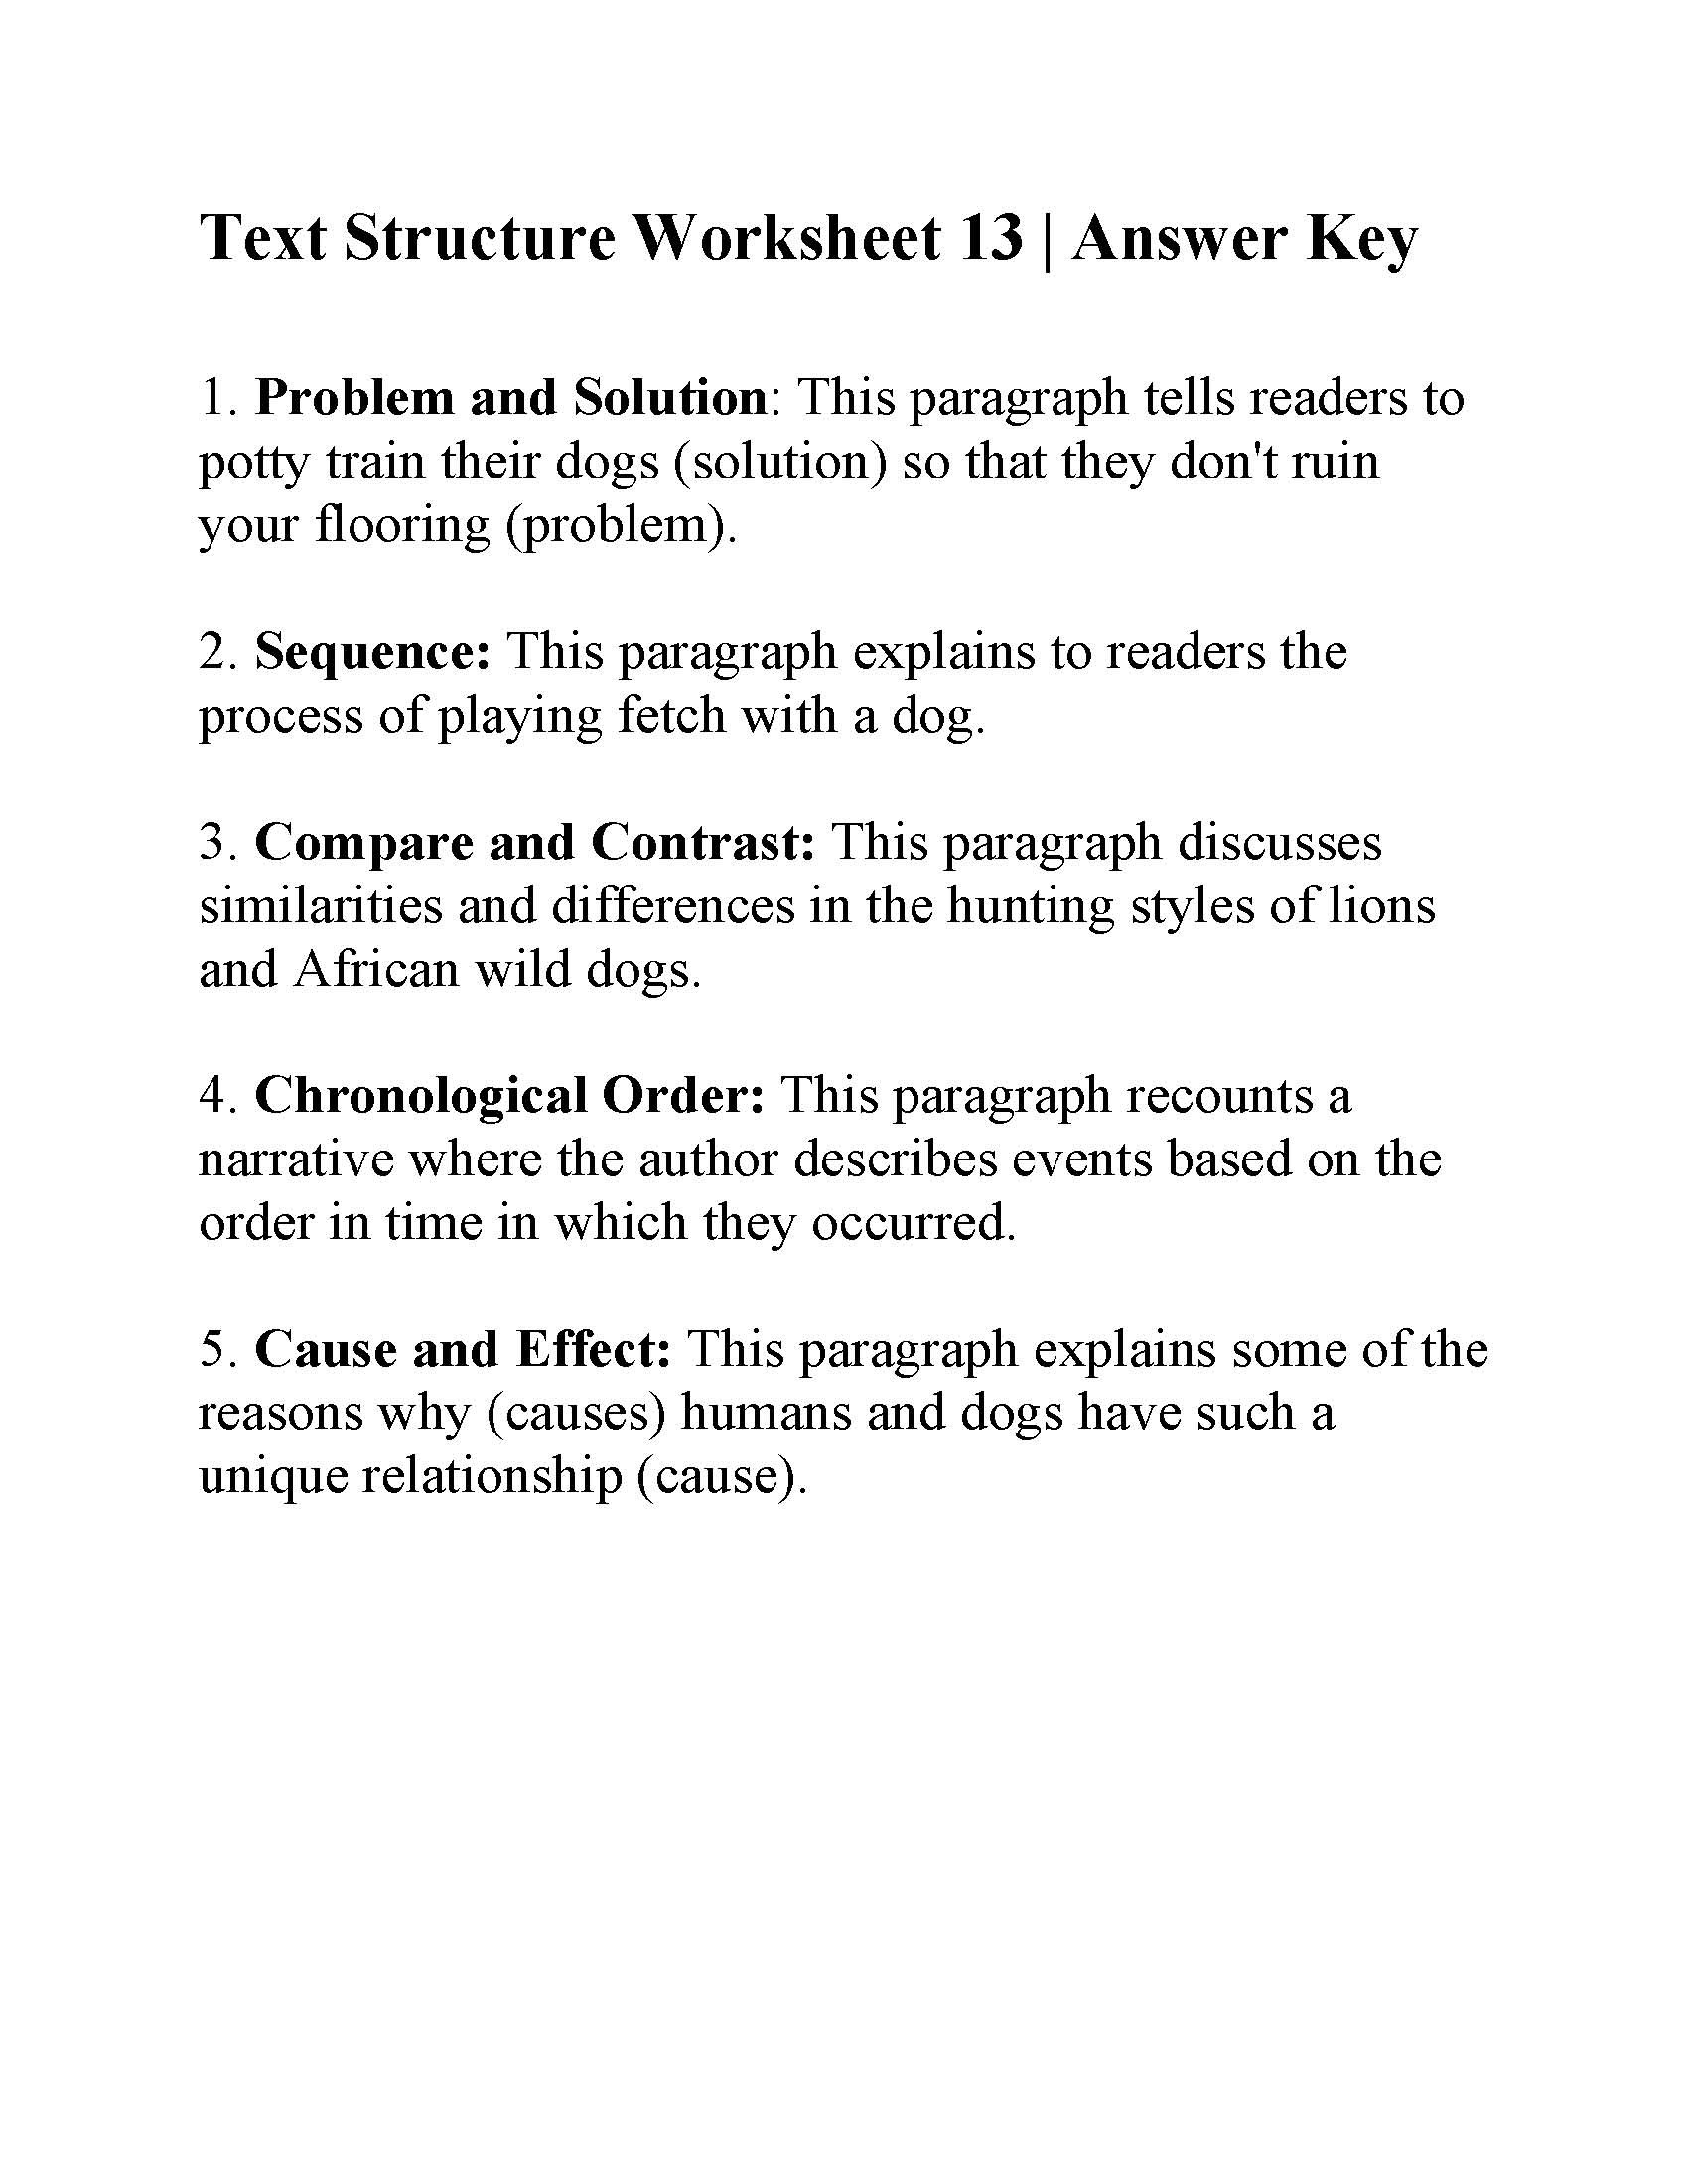 Text Structure 4th Grade Worksheets Text Structure Worksheet Answers Worksheets Matematik Games